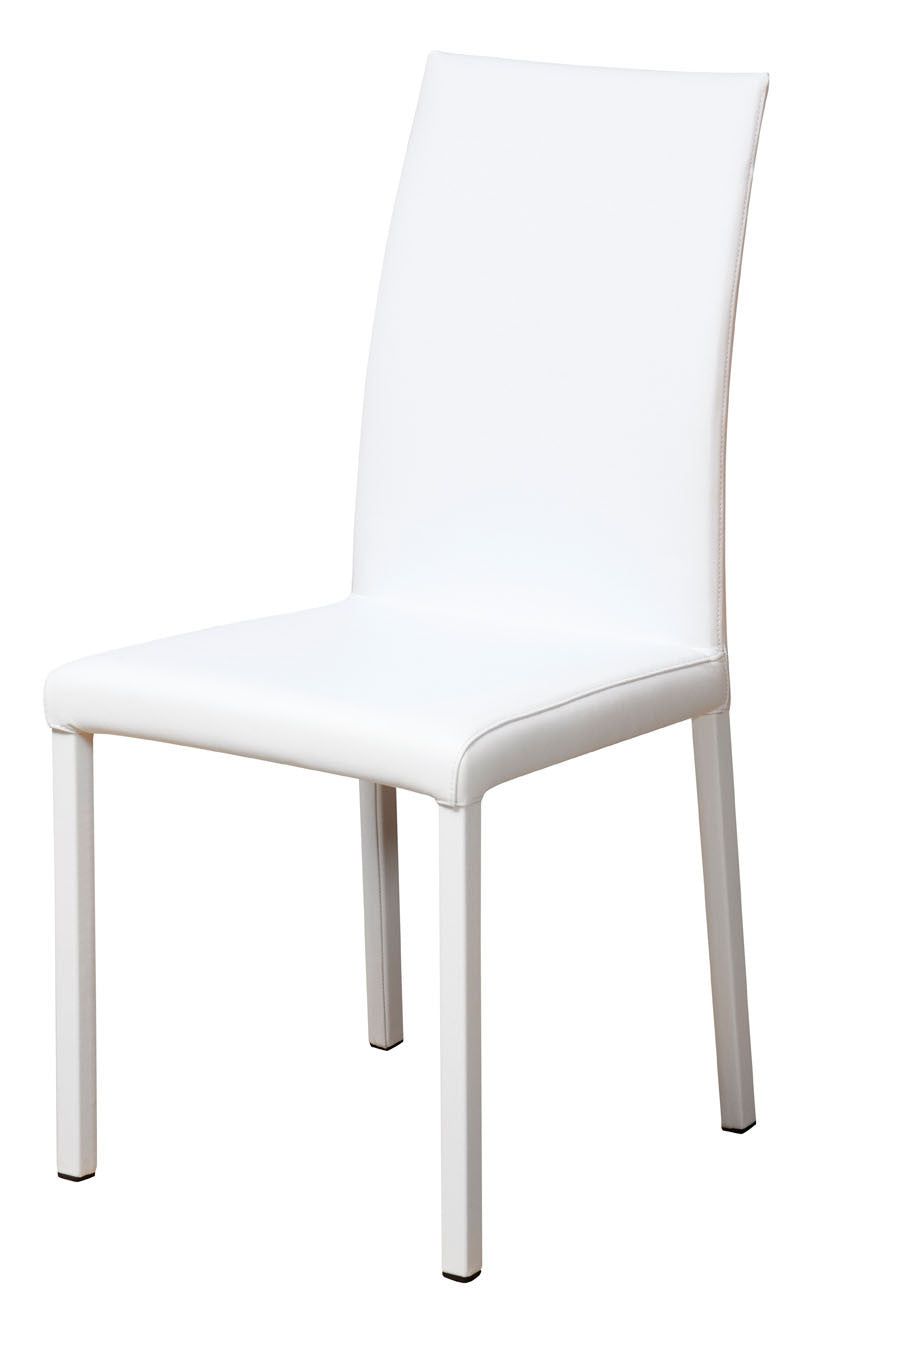 dining chair perth wa. fully upholstered white leather dining chairs with steel base perth, wa chair perth wa r